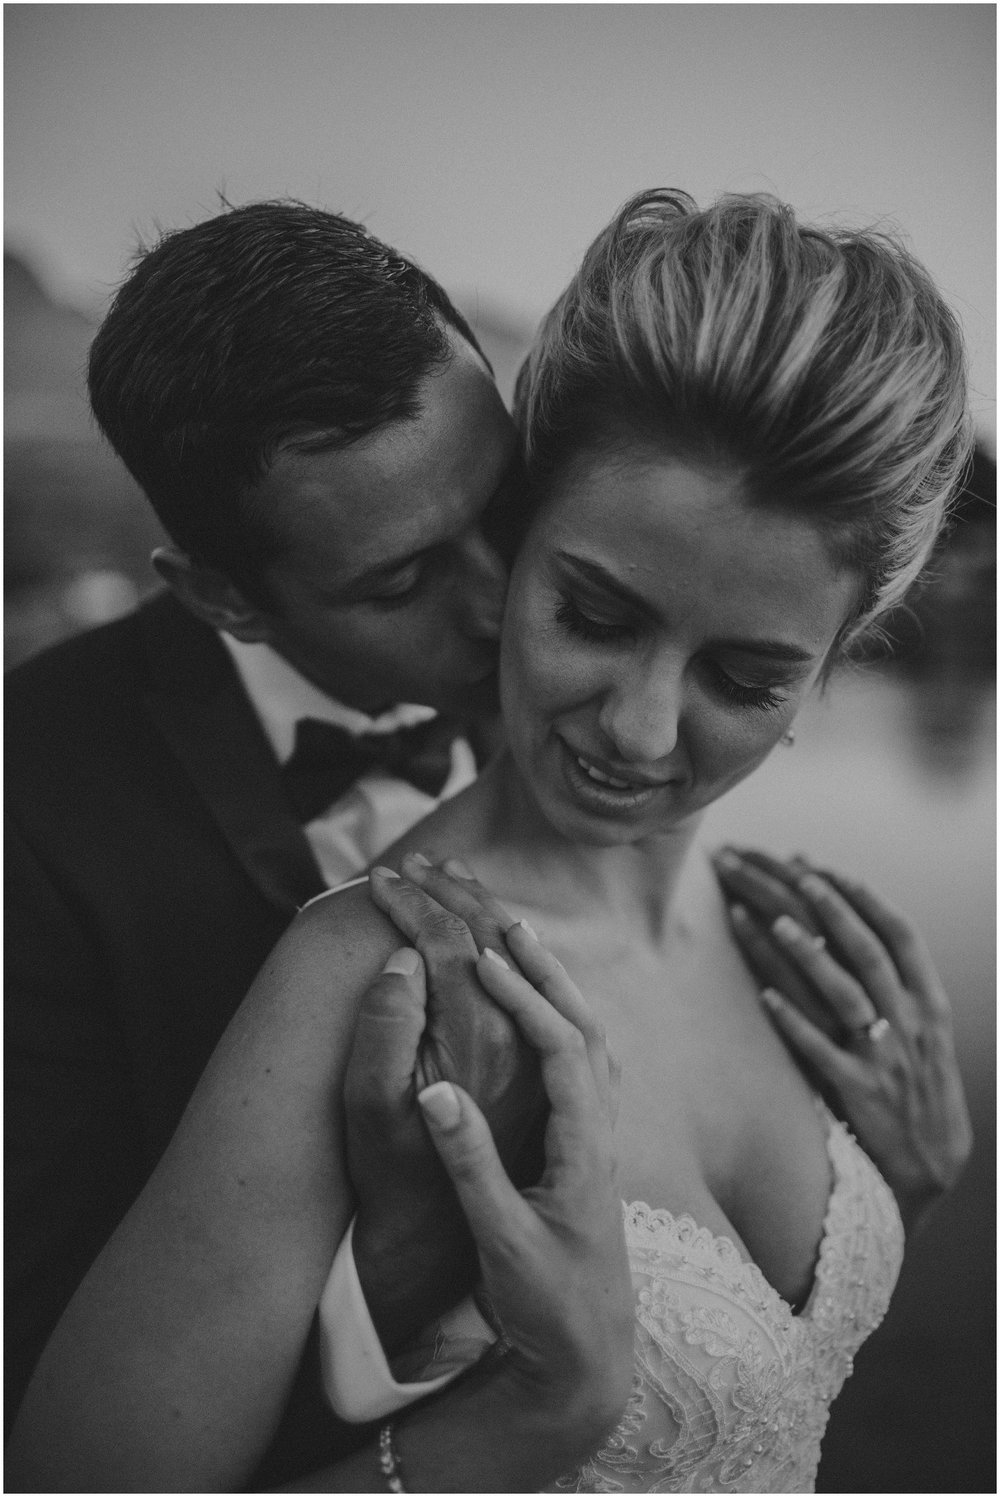 Top Artistic Creative Documentary Wedding Photographer Cape Town South Africa Rue Kruger_0151.jpg